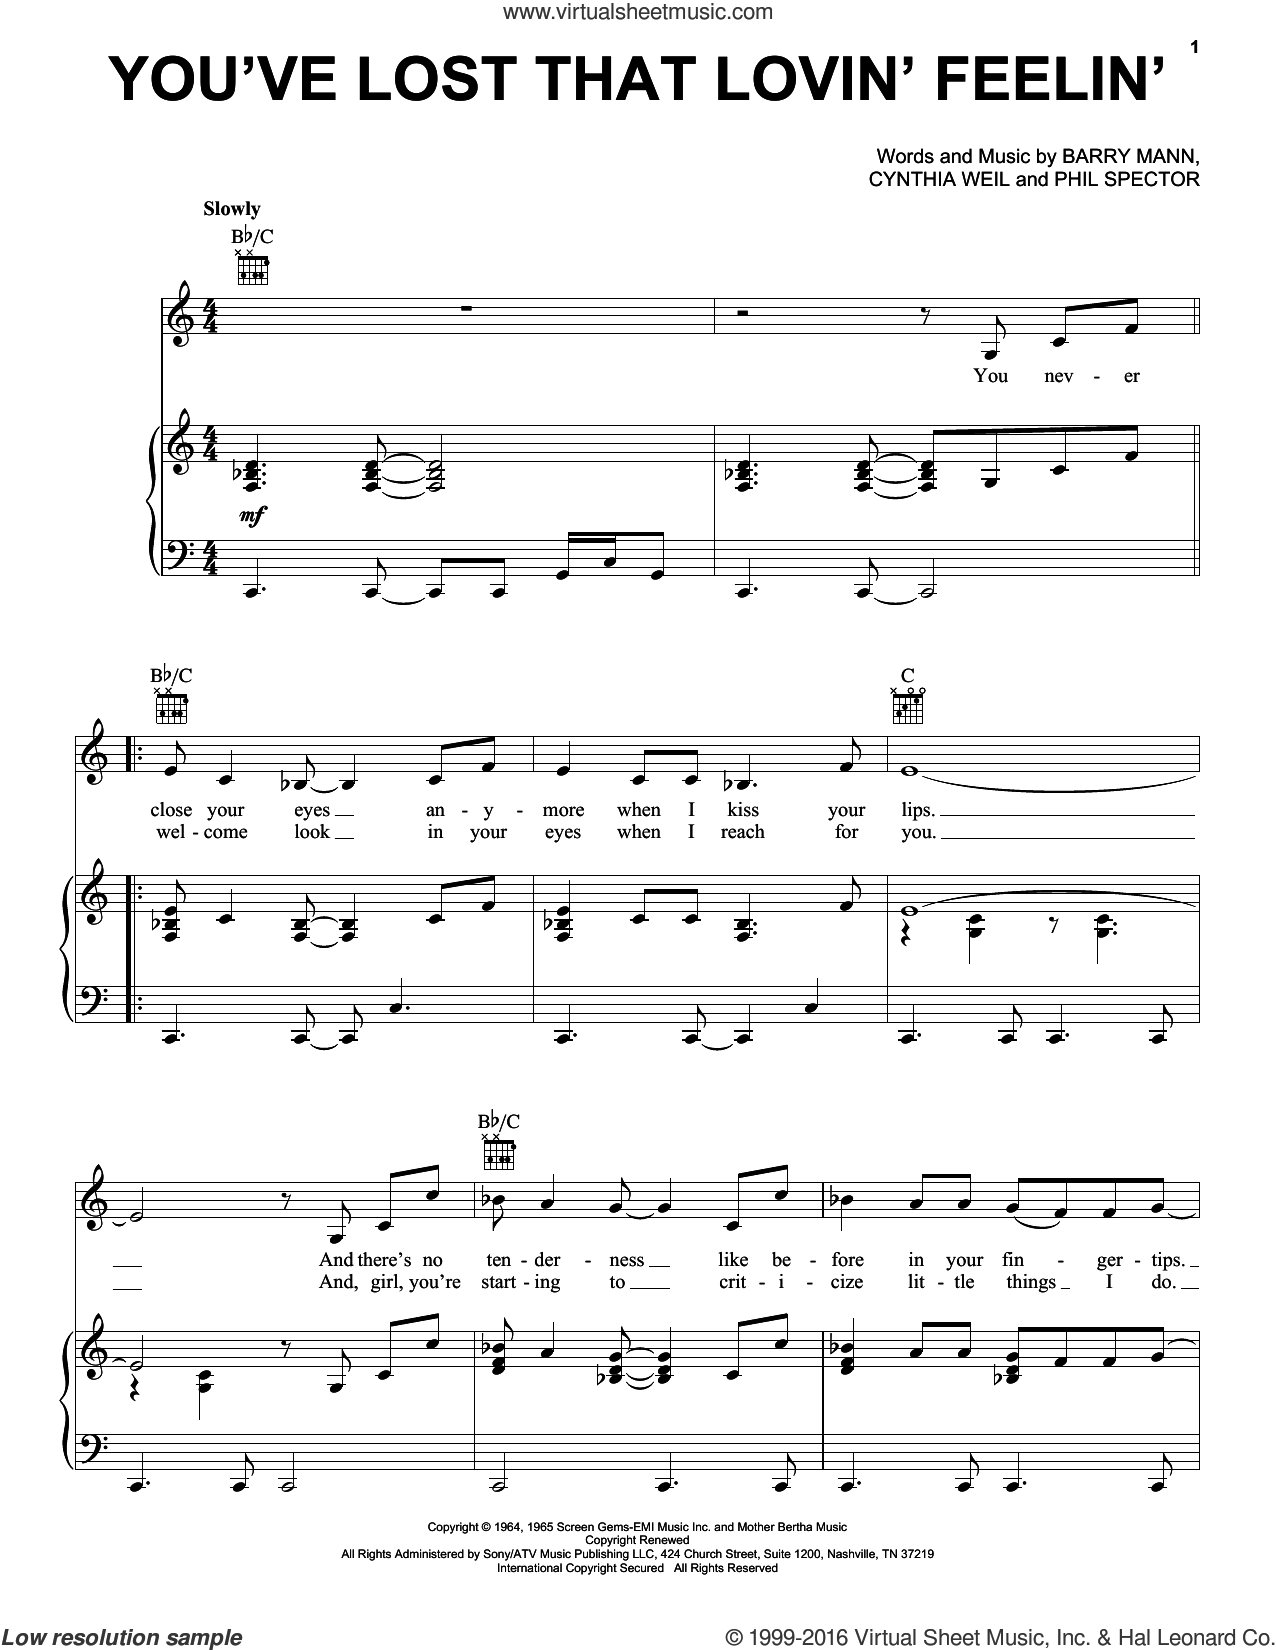 You've Lost That Lovin' Feelin' sheet music for voice, piano or guitar by Cynthia Weil, Elvis Presley, The Righteous Brothers, Barry Mann and Phil Spector. Score Image Preview.